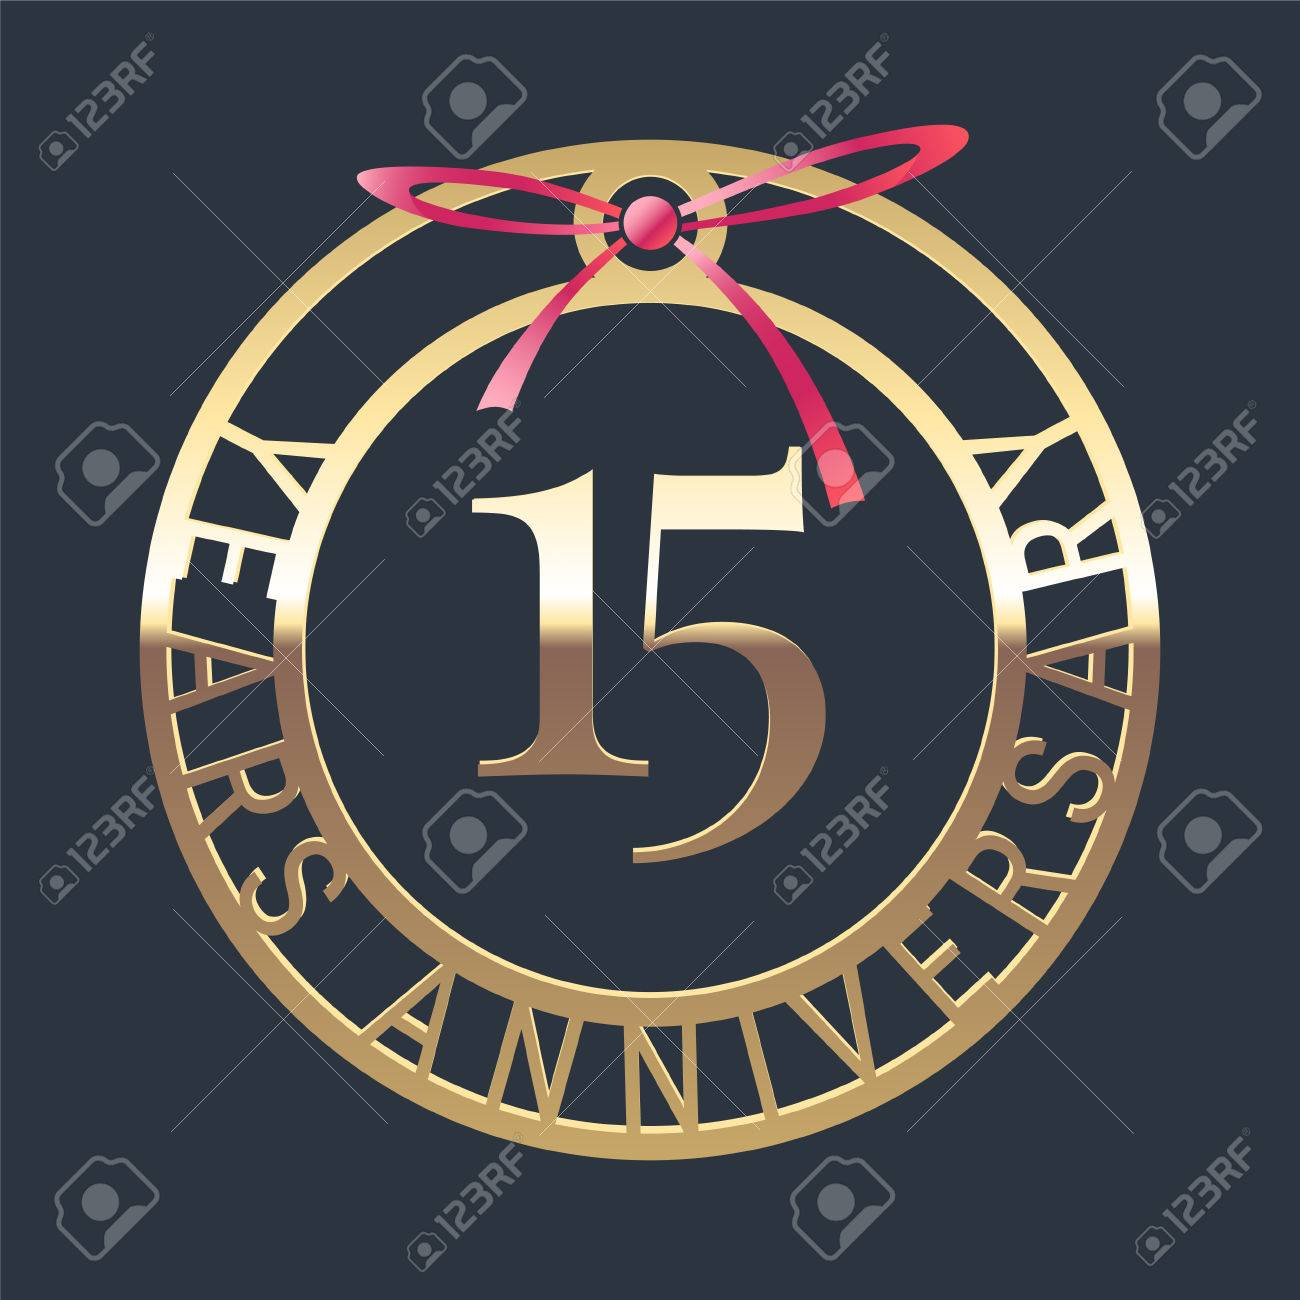 15 Years Anniversary Vector Icon Symbol Graphic Design Element